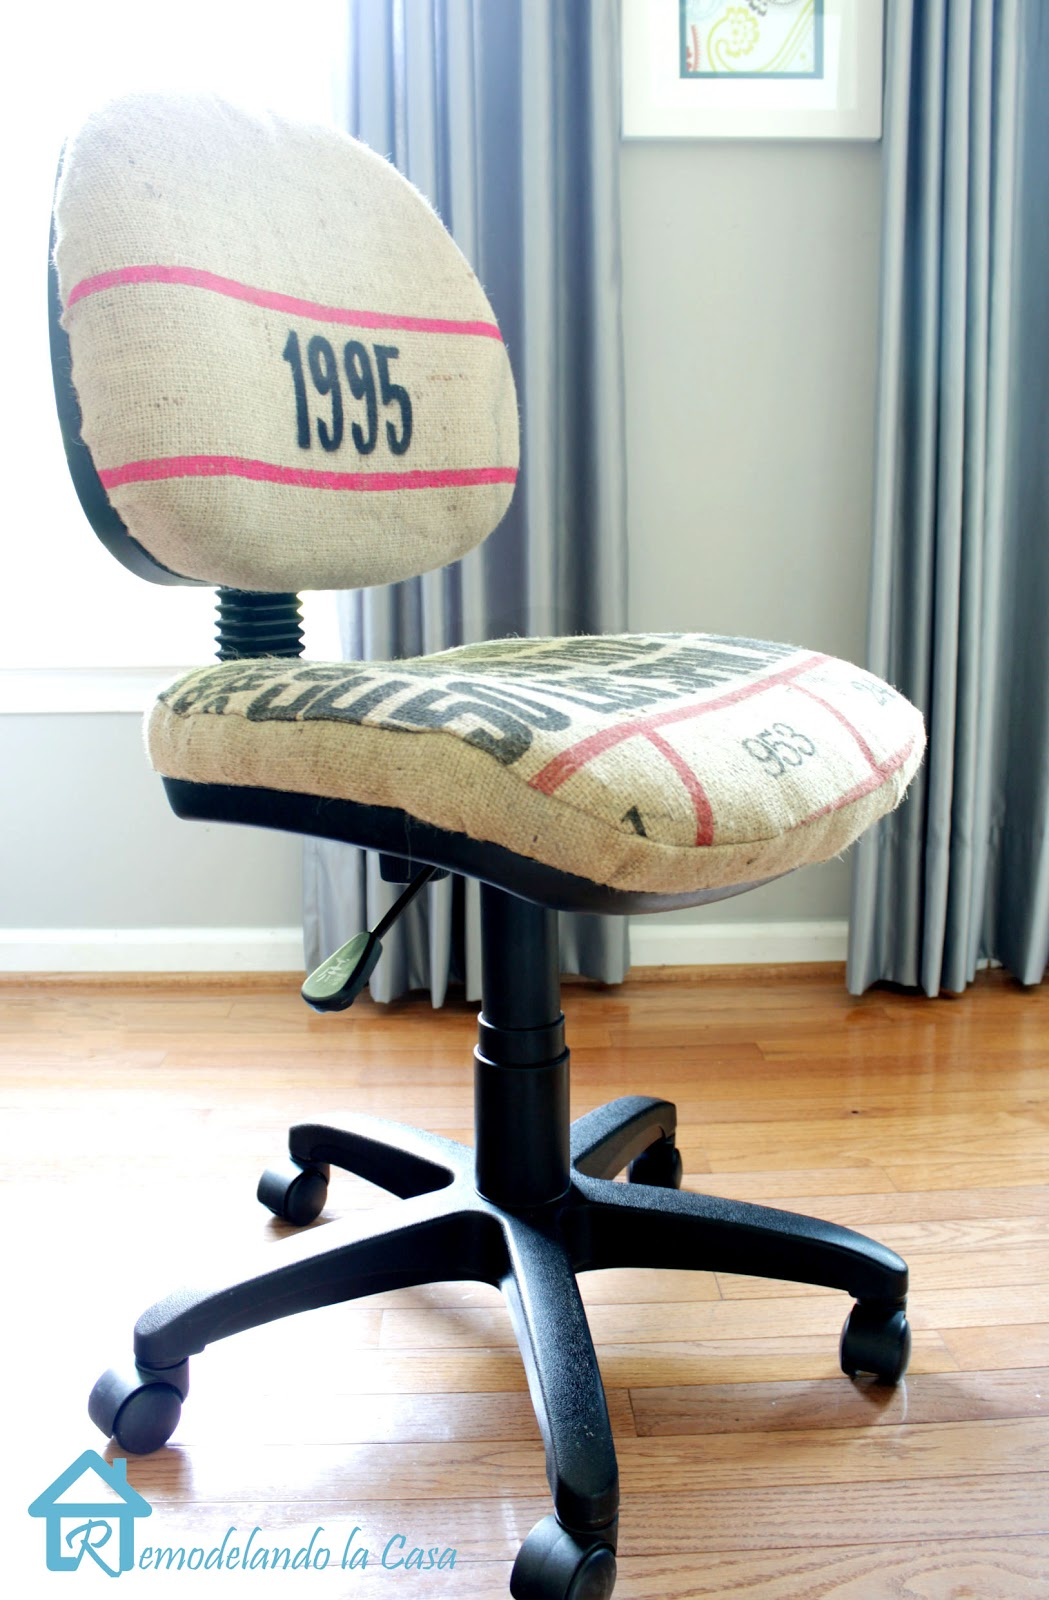 a burlap coffee sack is used to upholster an office chair.